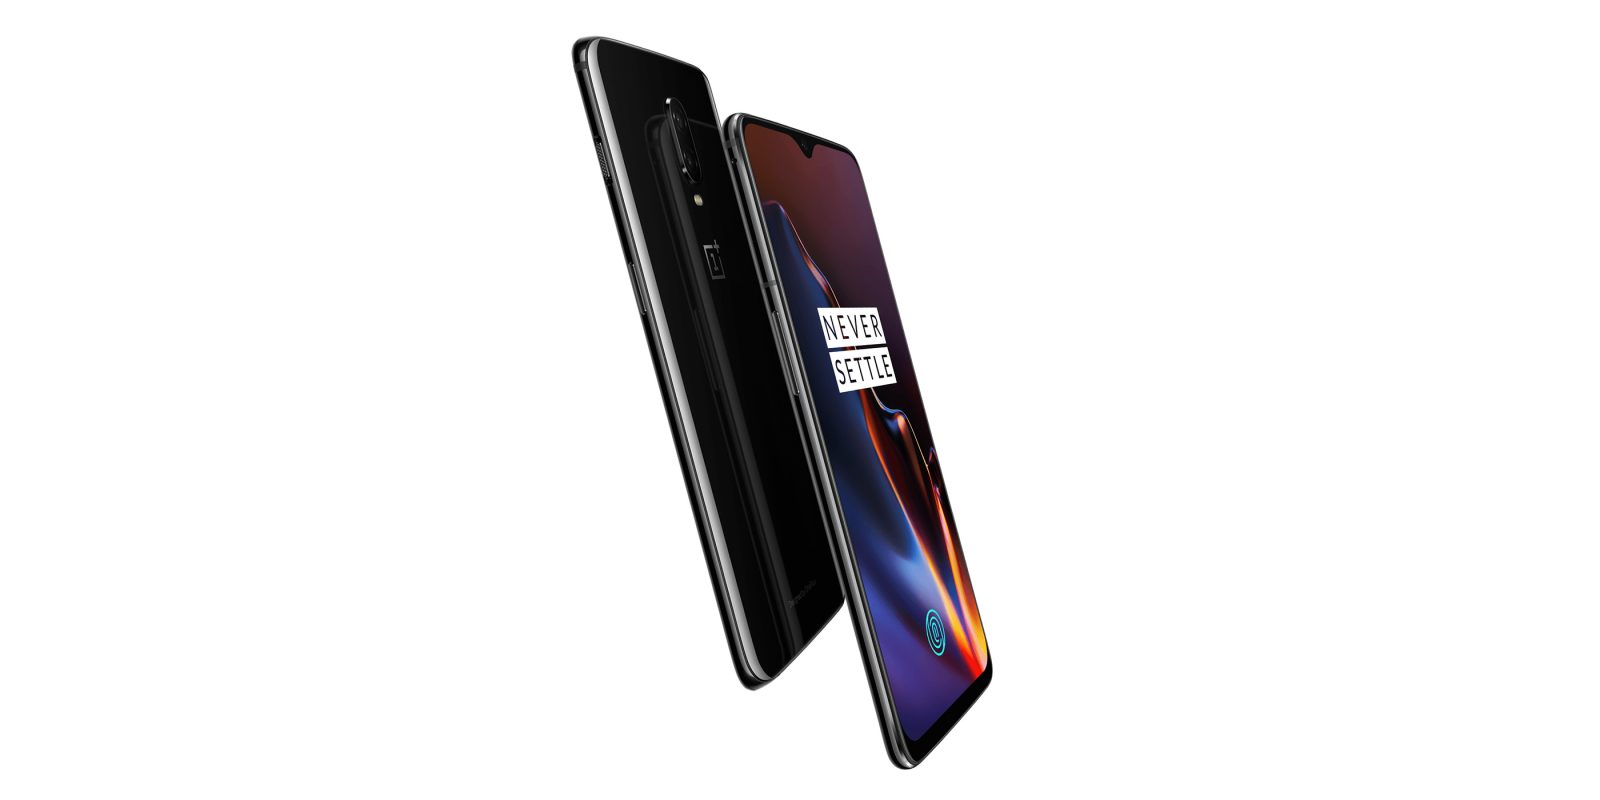 OnePlus 6T Thunder Purple may be coming, T-Mobile details